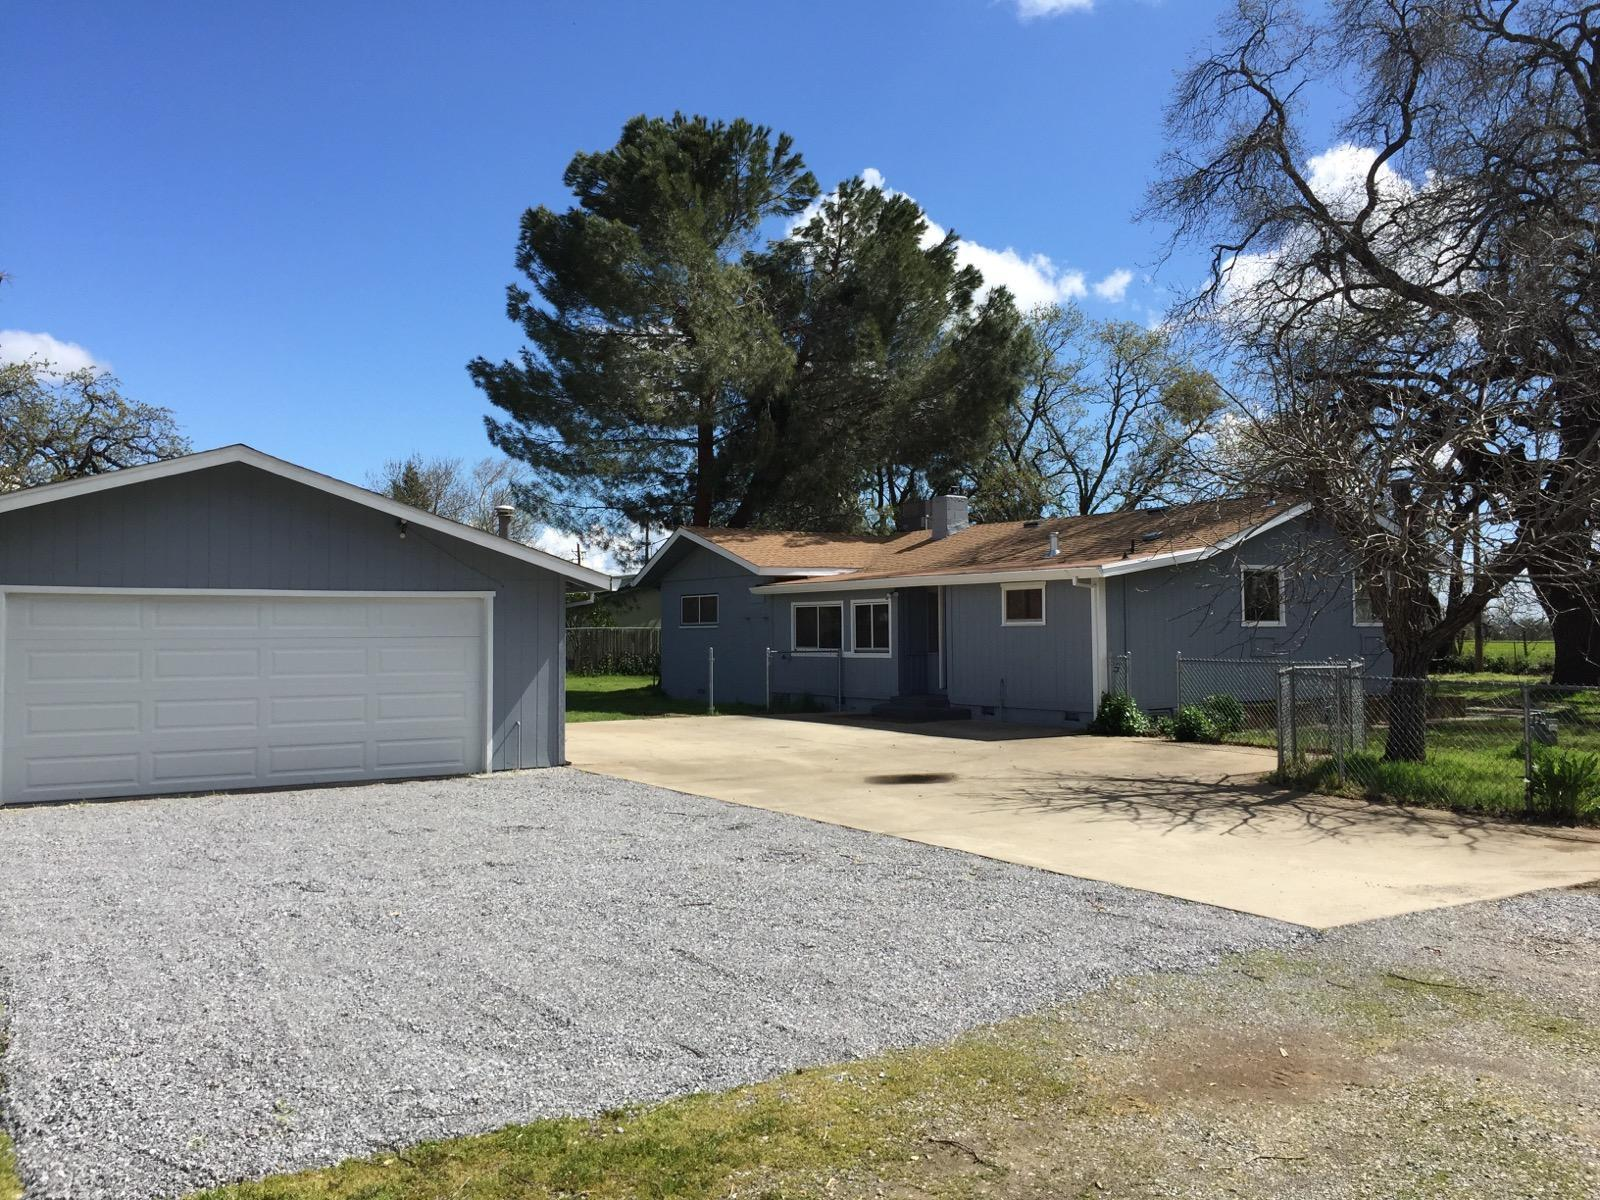 6635 Mountain View Dr, Anderson, CA 96007